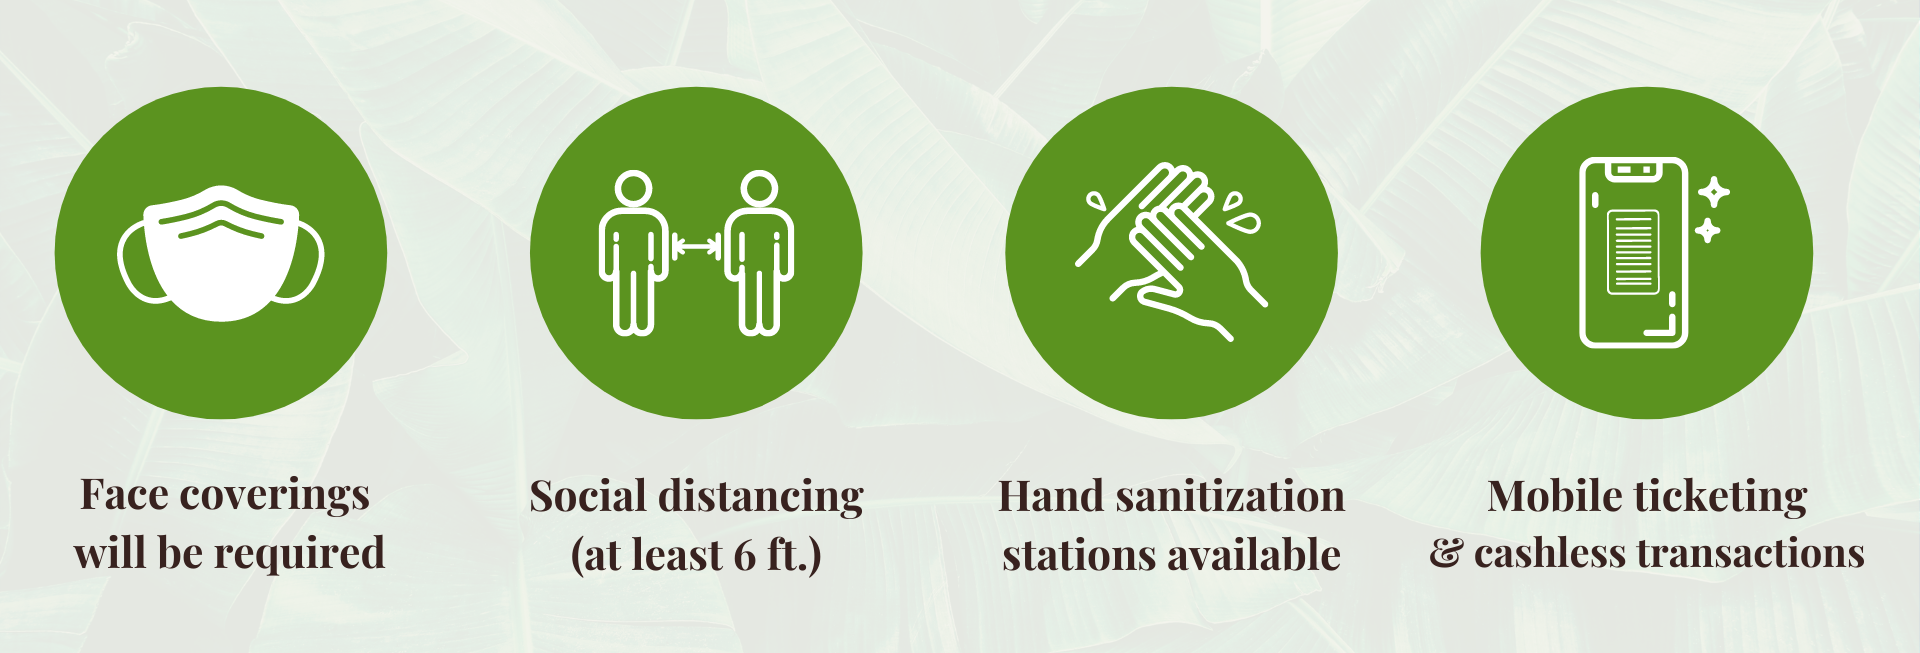 Icons for face coverings, social distancing, hand washing stations, and more